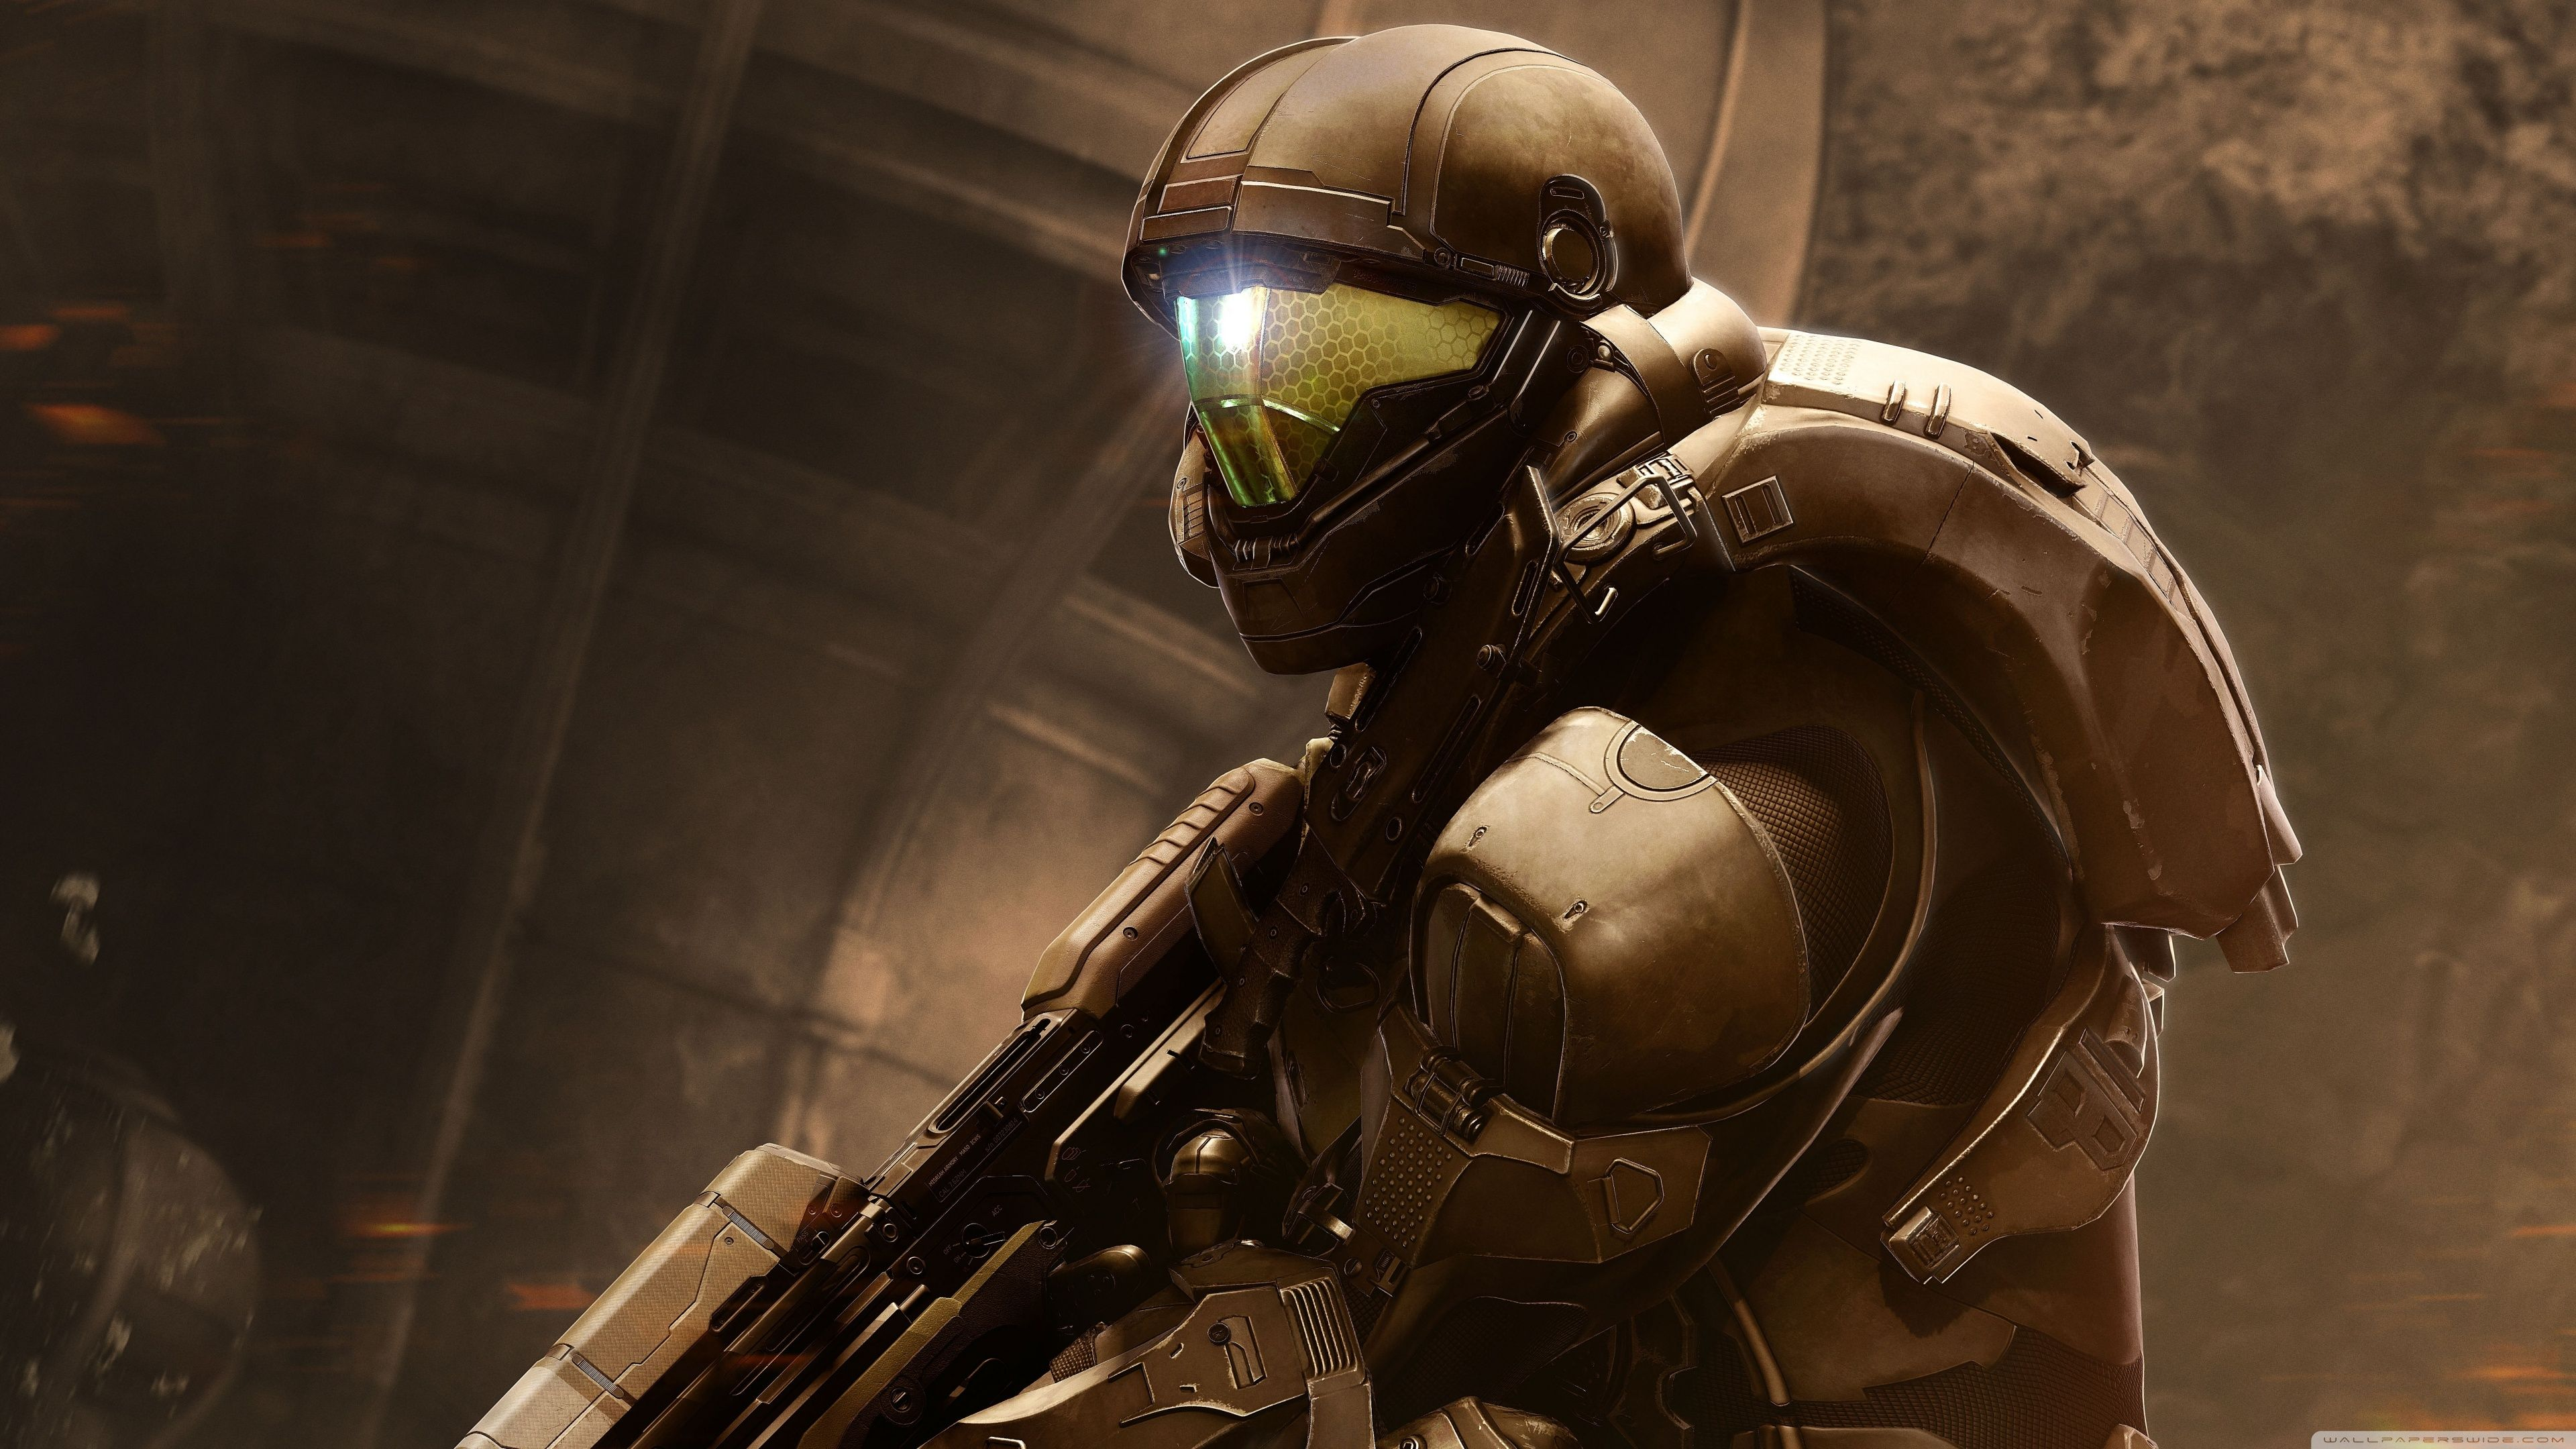 4K Halo Wallpapers - Top Free 4K Halo Backgrounds